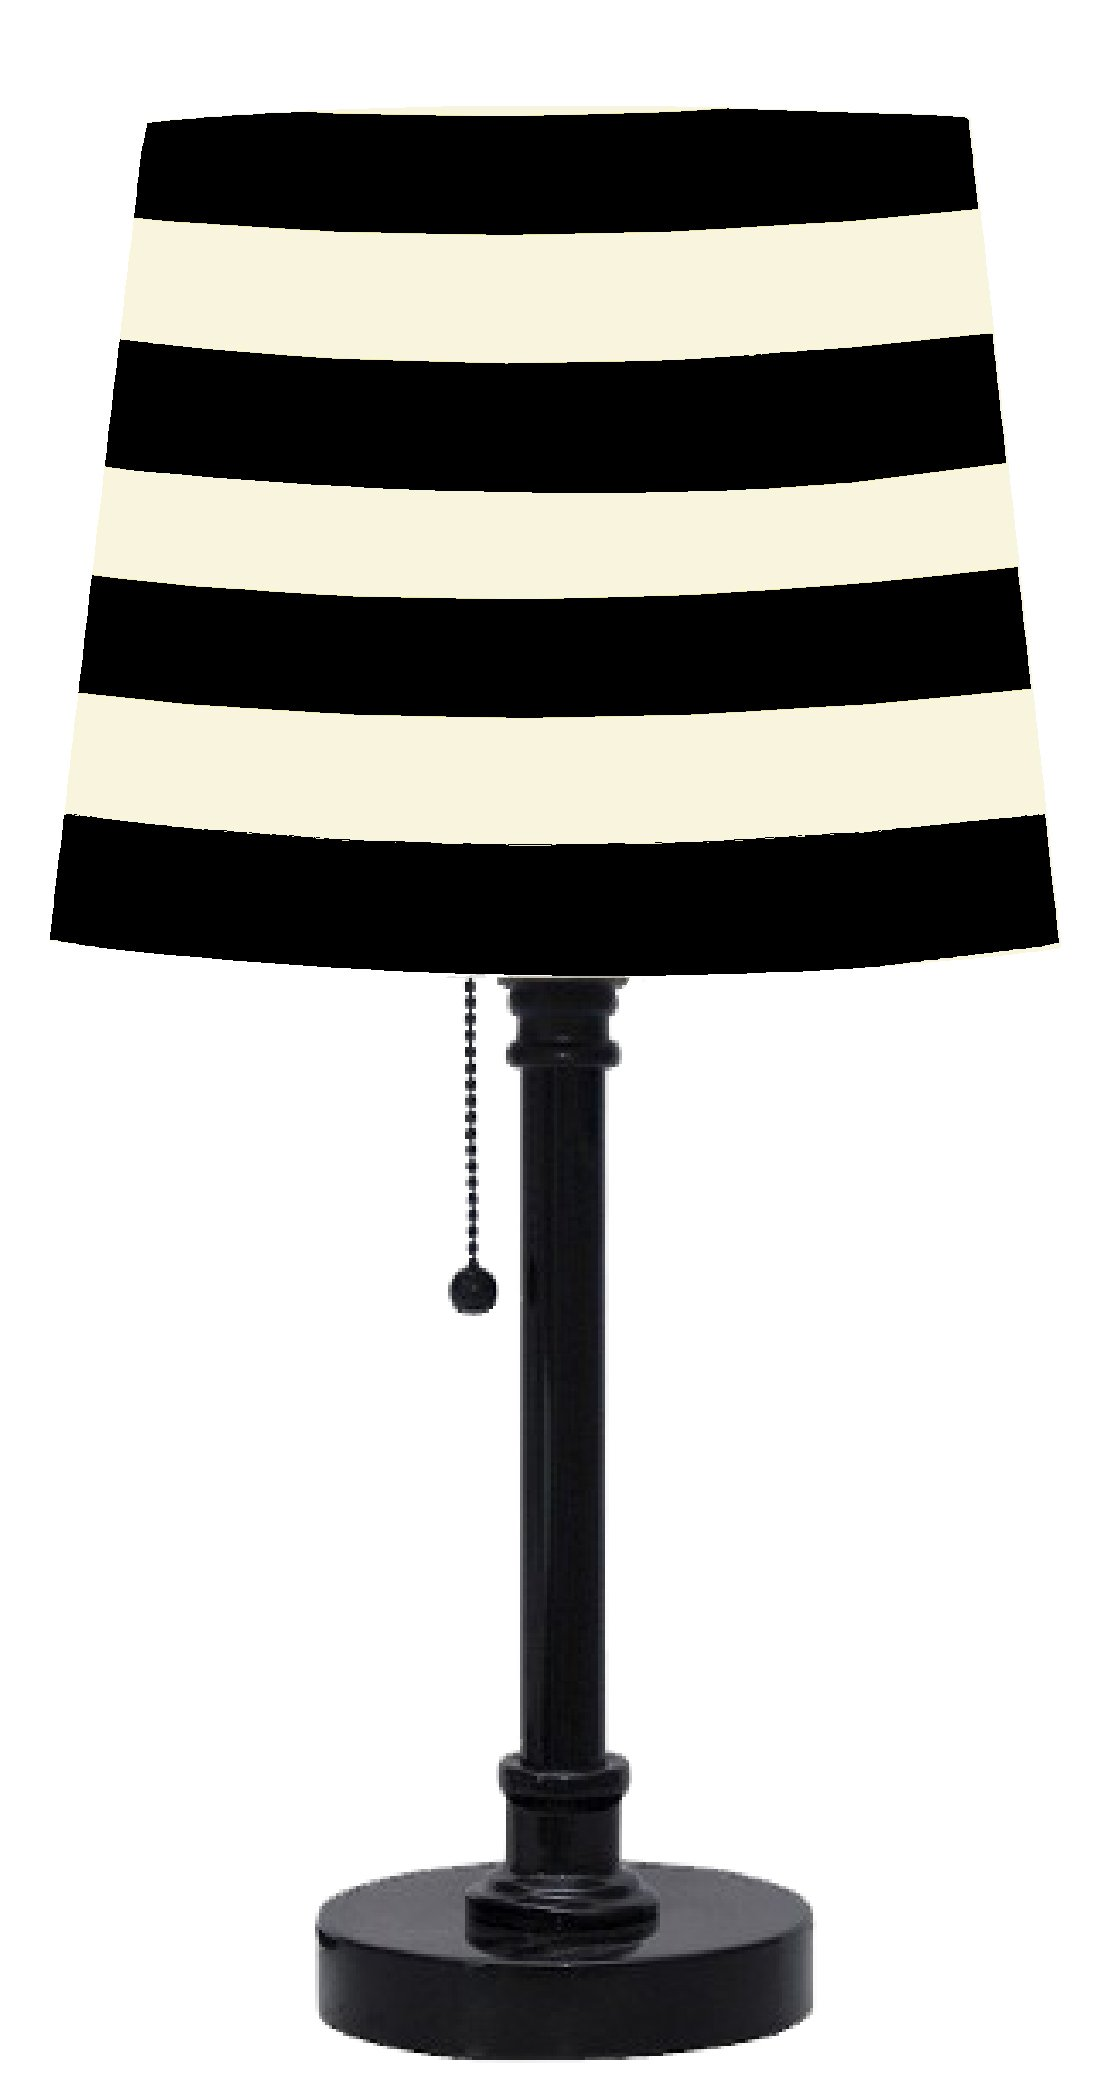 Urban Shop Black and White Striped Table Lamp - Black lamp base with a classic shade Easily coordinates with room decor Perfect for use on end and side tables - lamps, bedroom-decor, bedroom - 61Eehf7csgL -